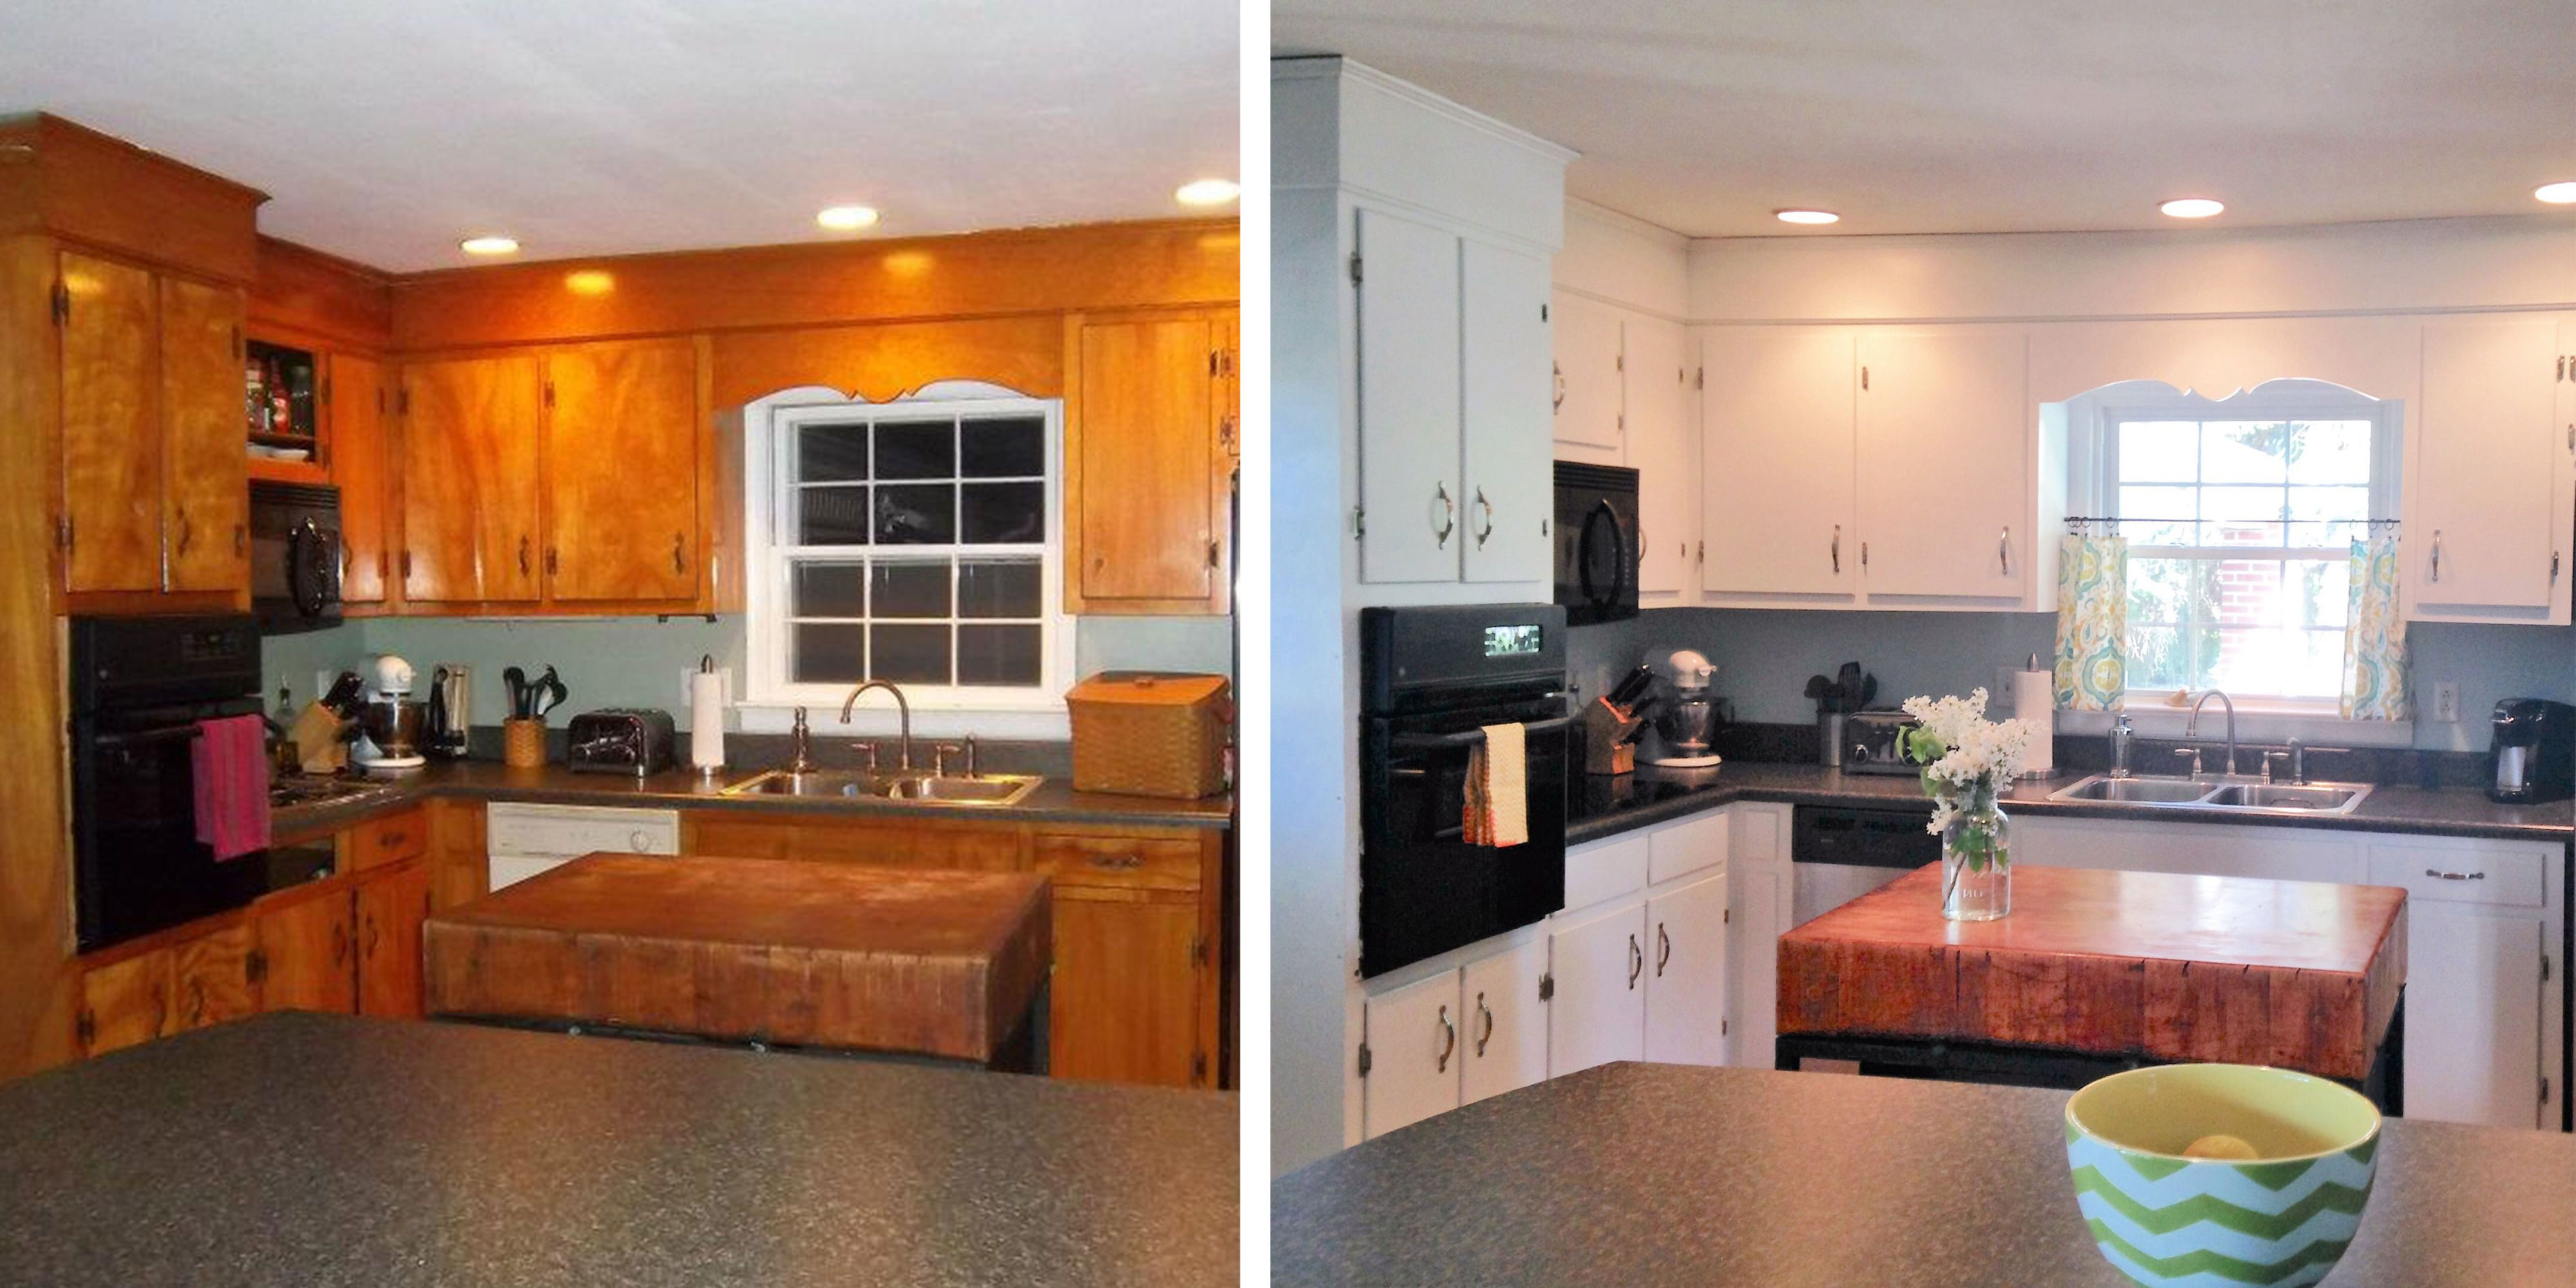 10 diy kitchen cabinet makeovers before after photos that prove rh countryliving com